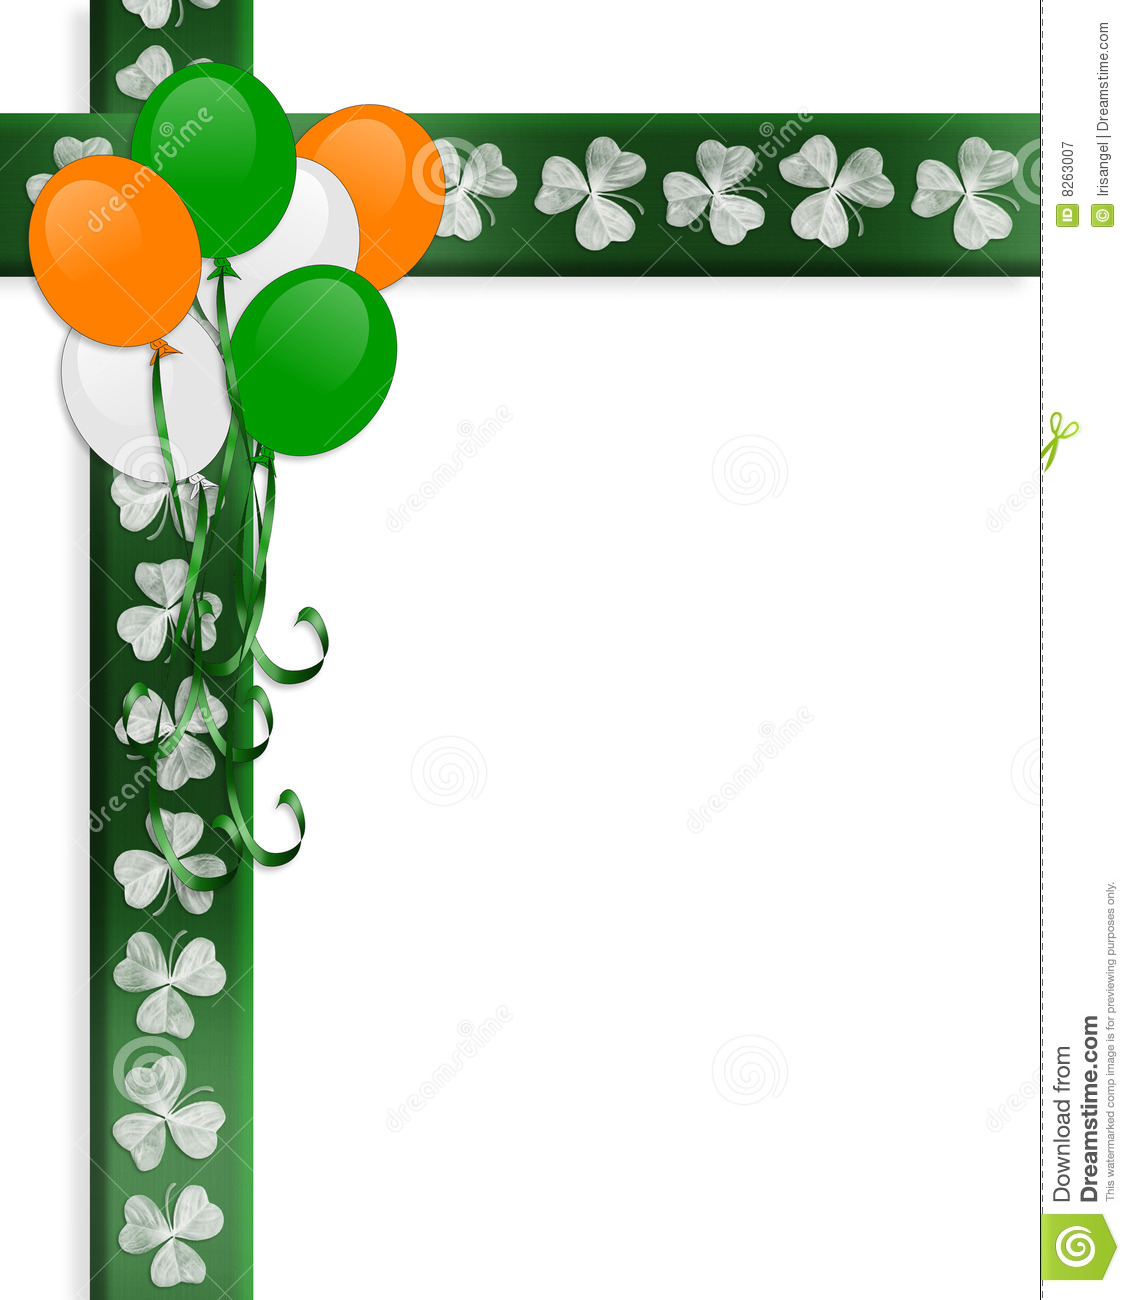 St Pattys Day Irish Border Balloons Royalty Free Stock ...